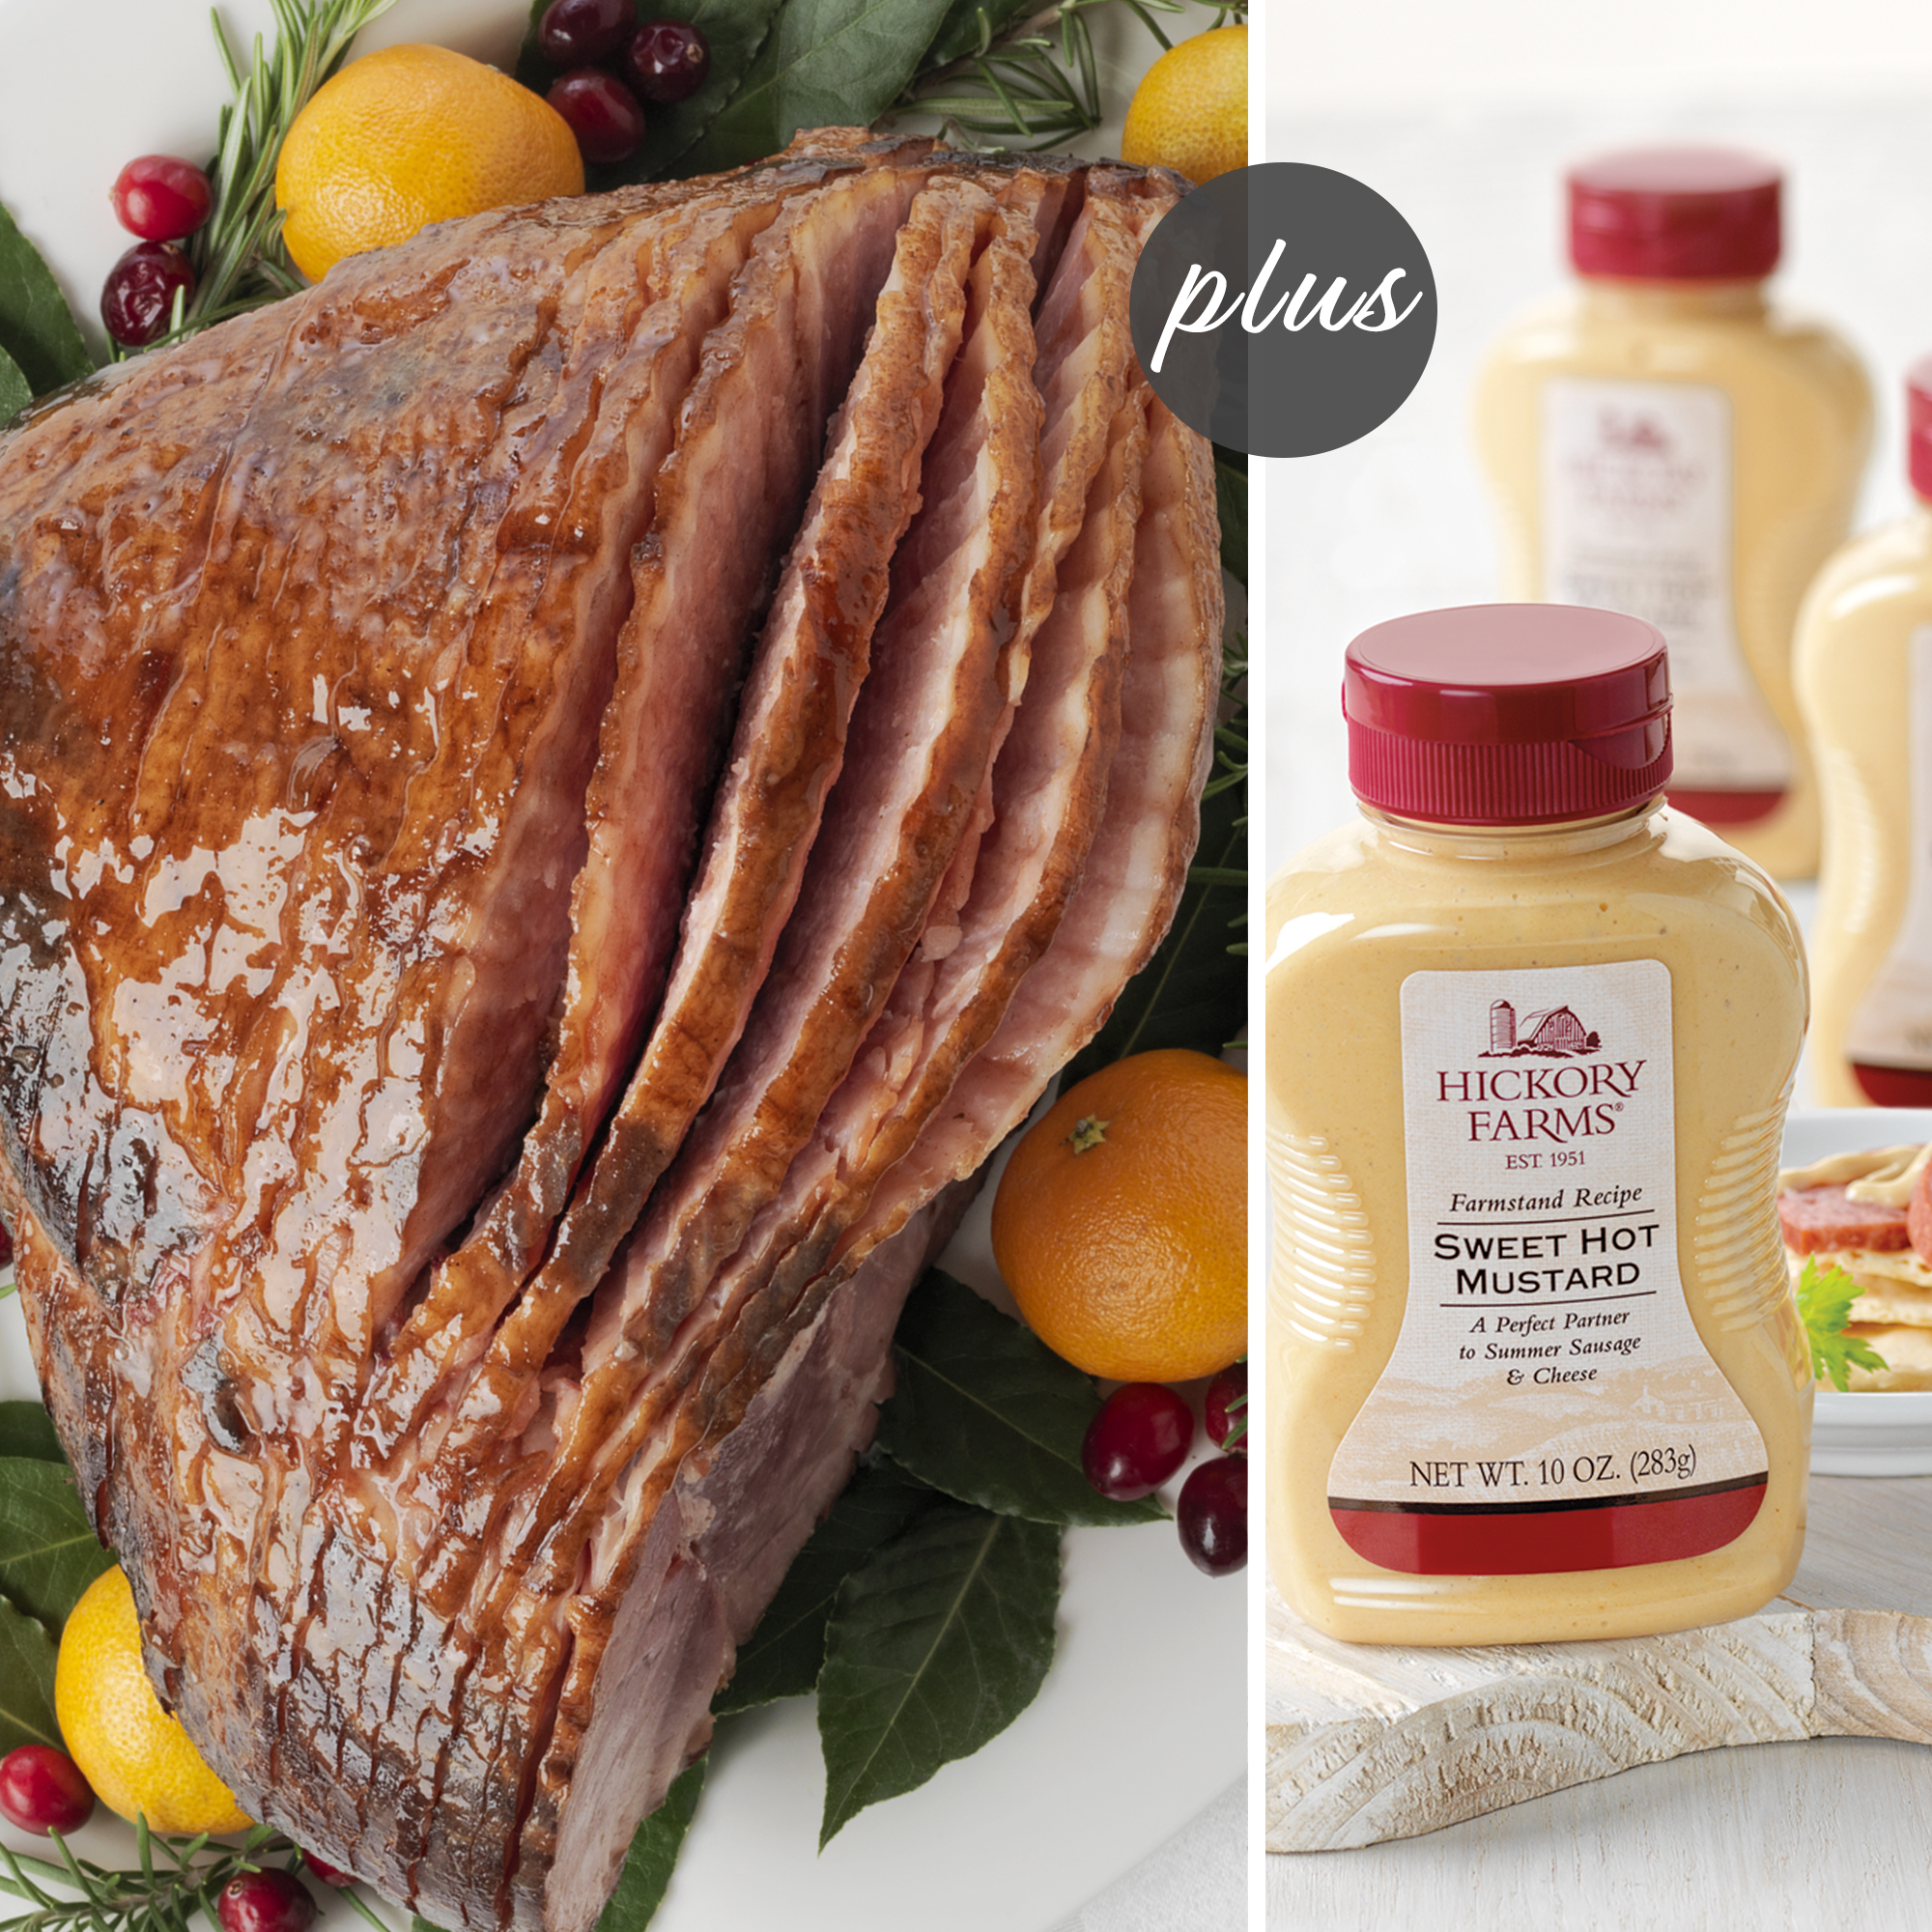 Signature Ham Collection includes a HoneyGold Spiral Sliced Ham and Sweet Hot Mustard